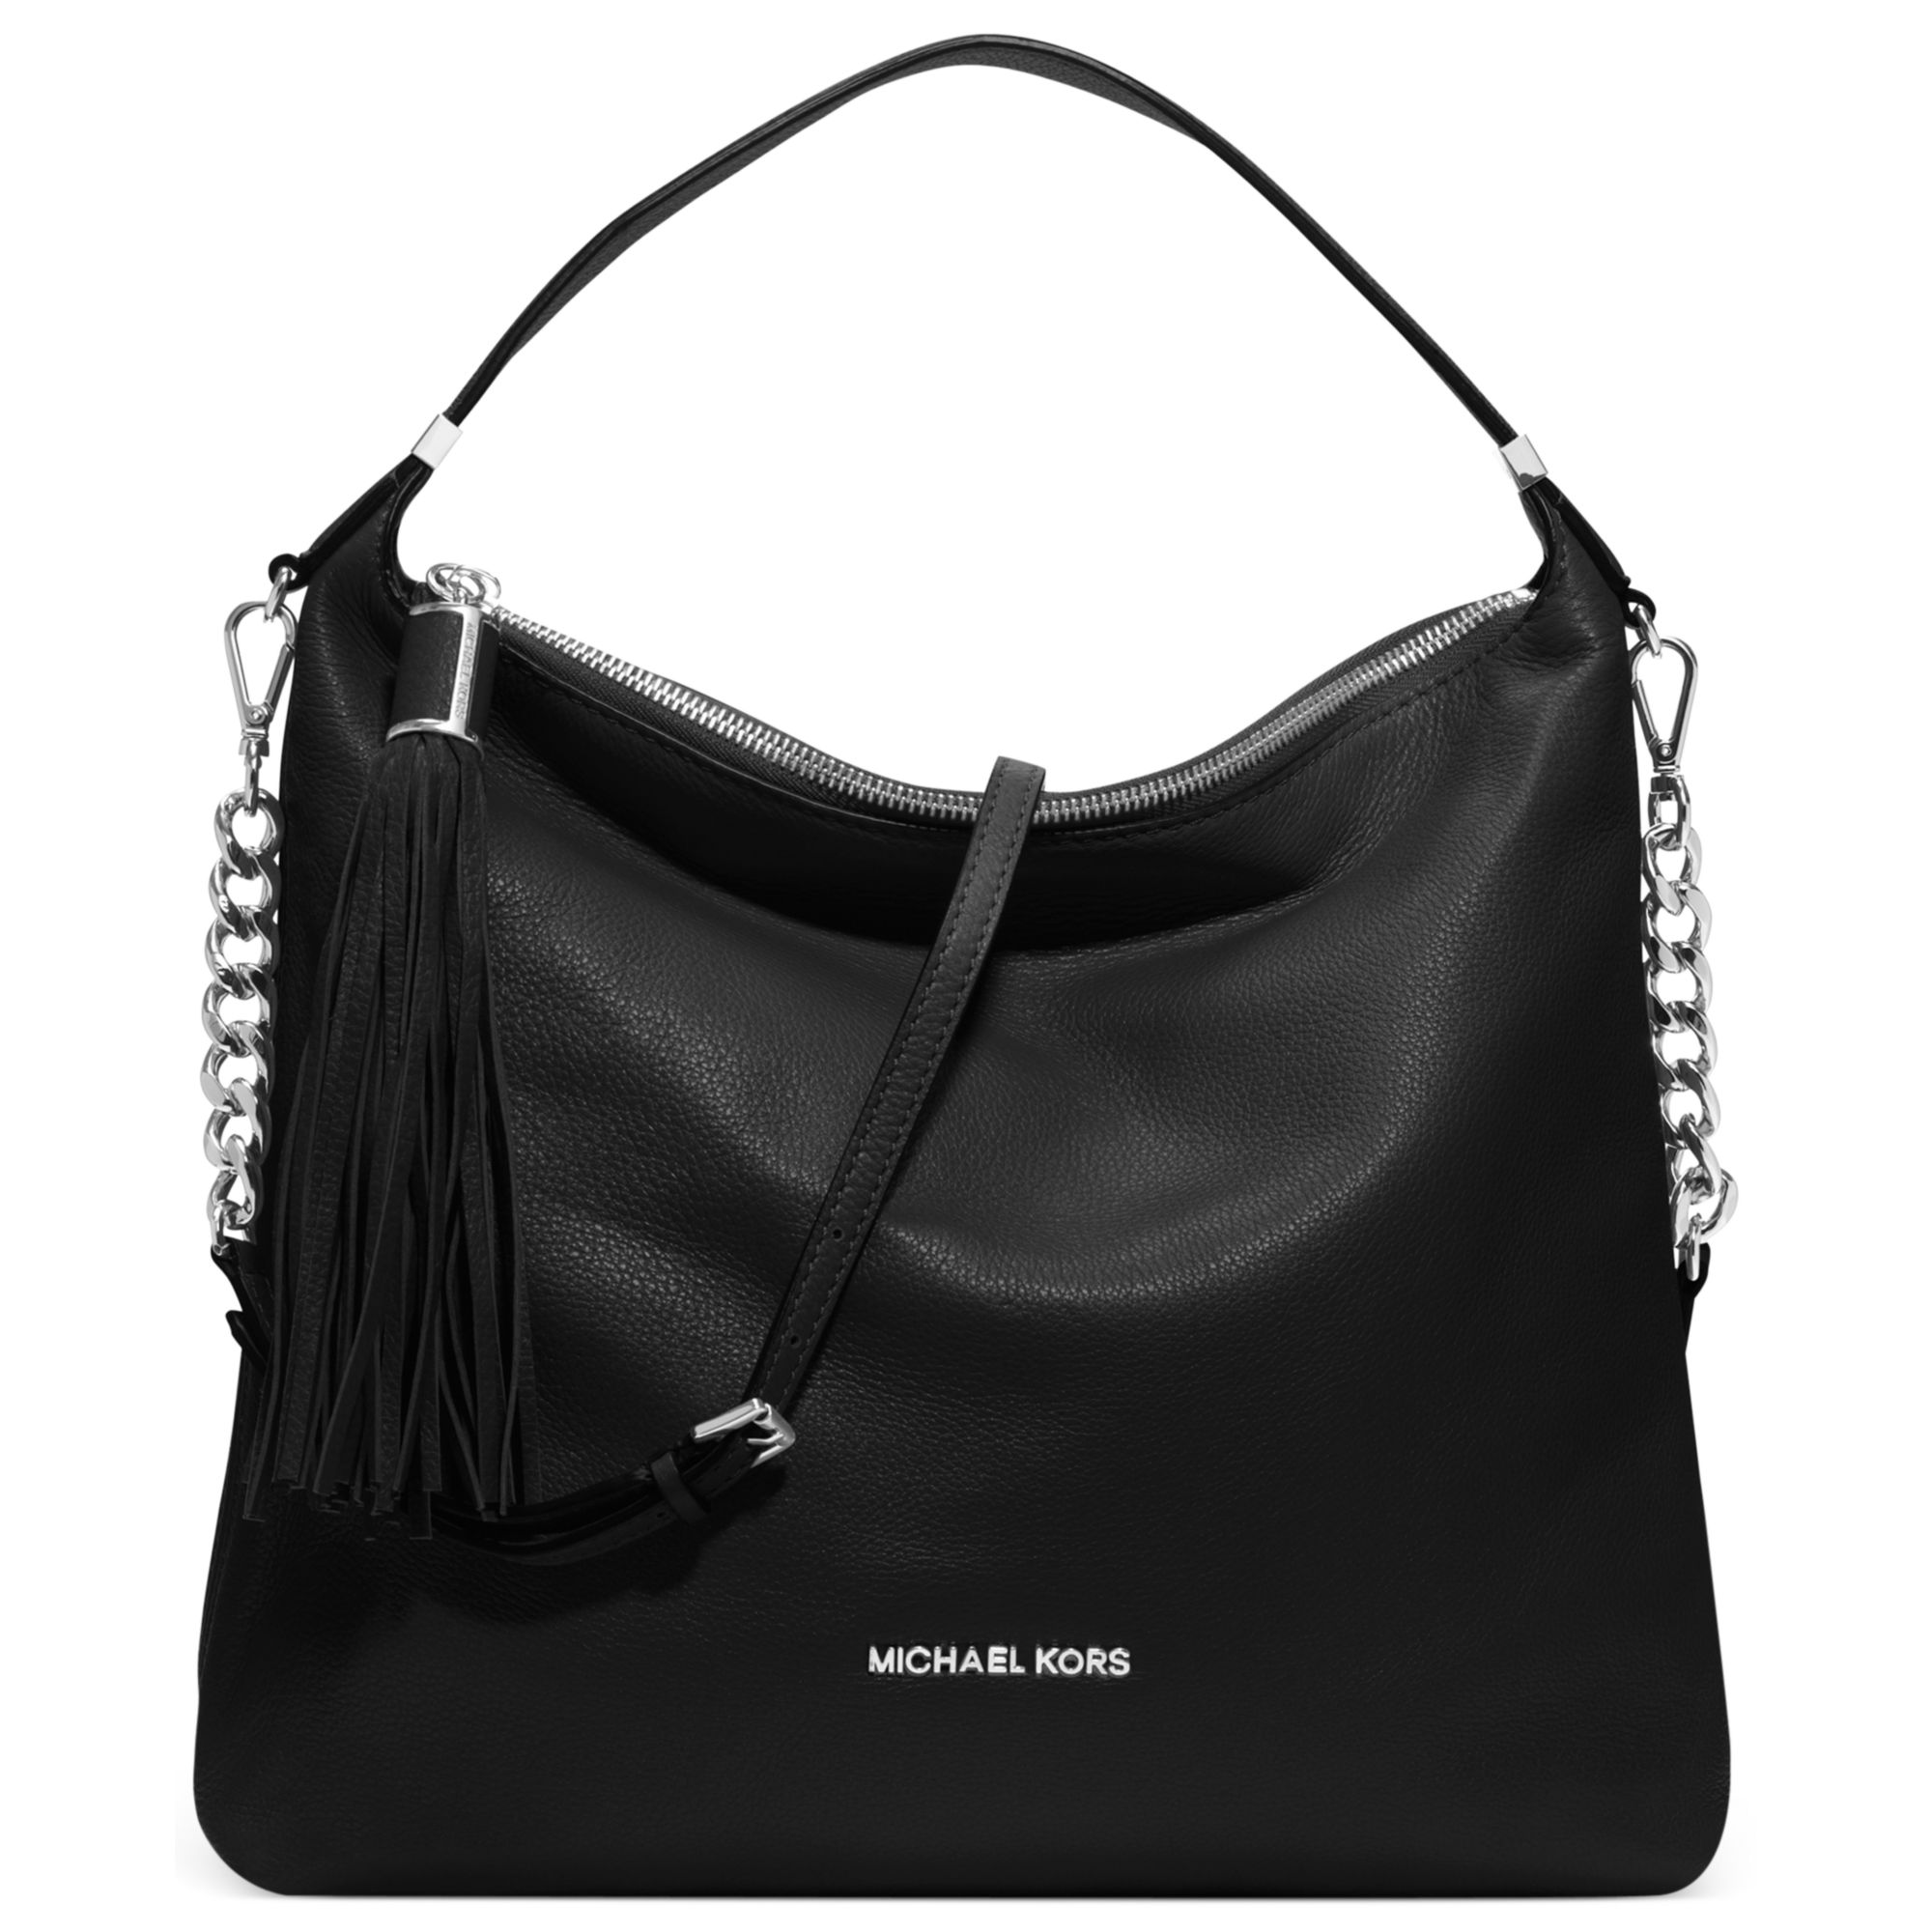 Michael kors Mia French Calf Envelope Shoulder Bag in Black - Save ...